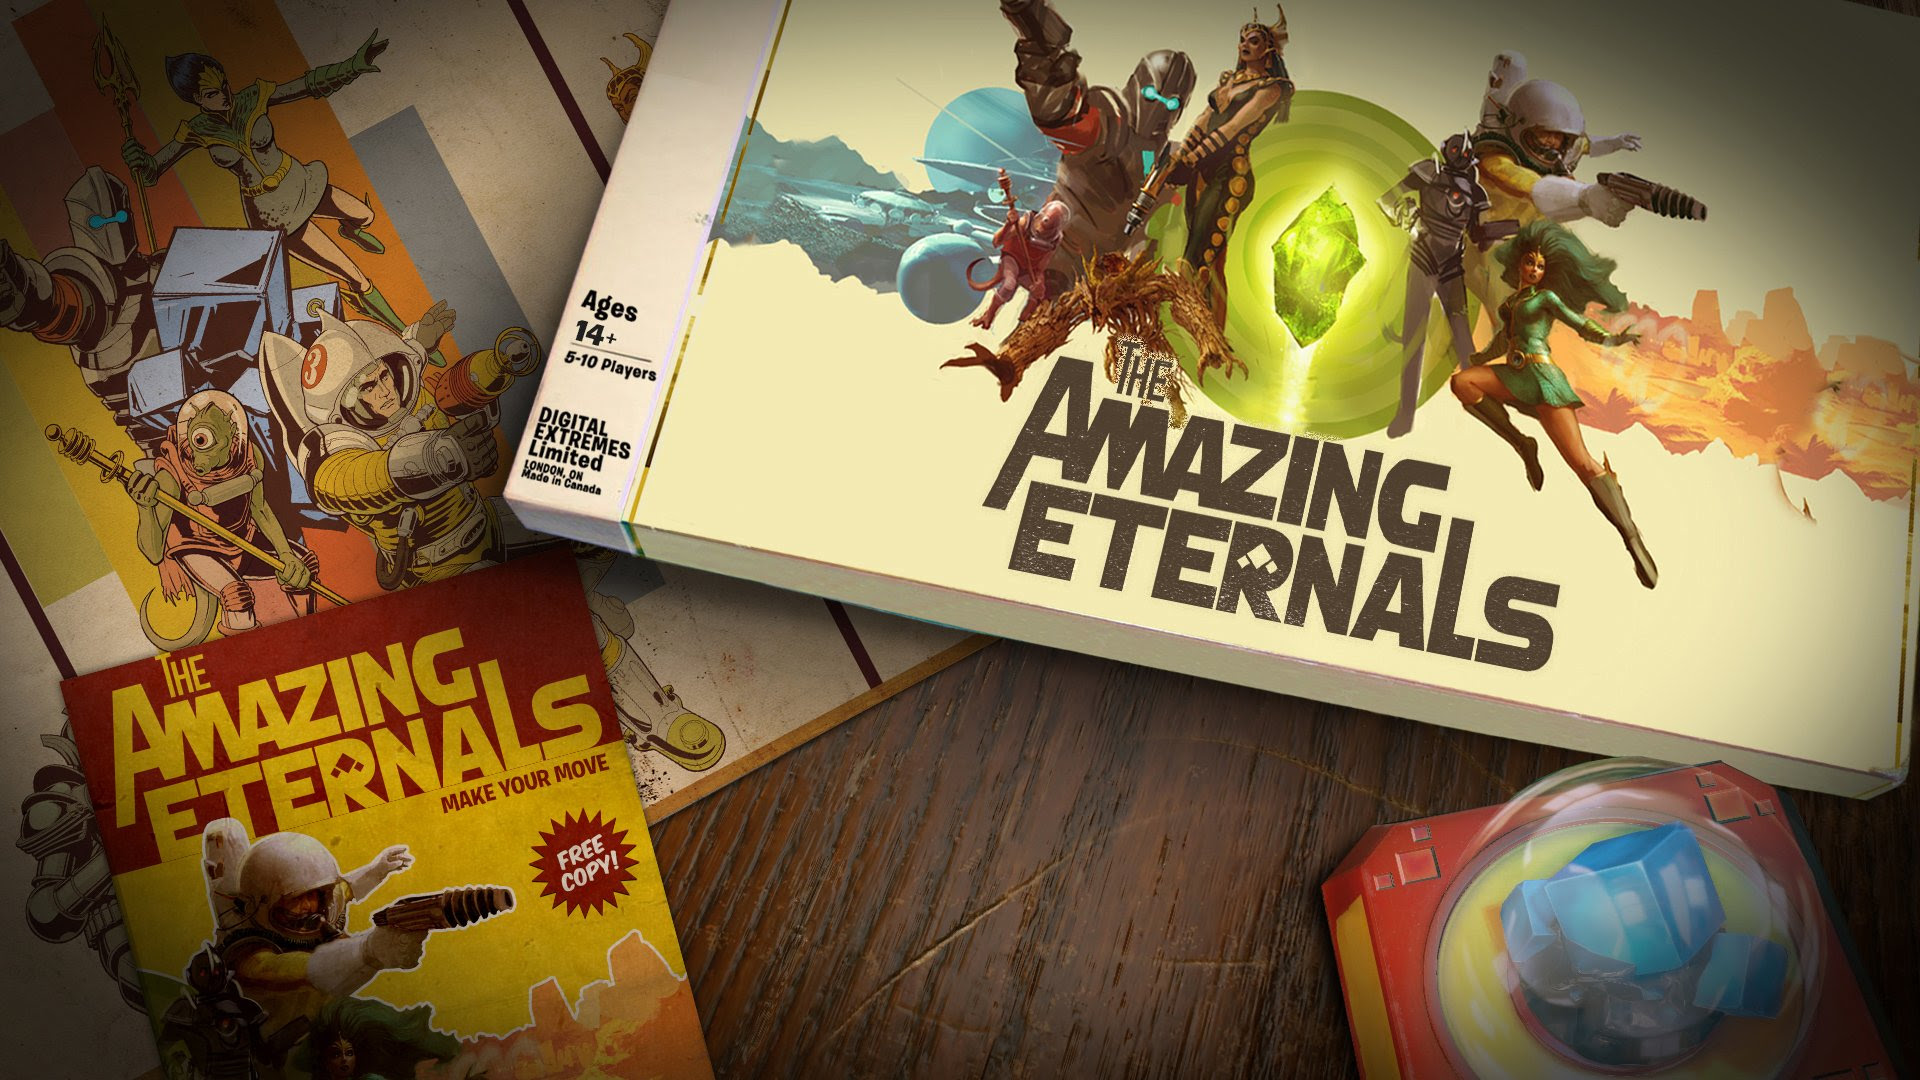 Digital Extremes' hero shooter The Amazing Eternals looks promising screenshot